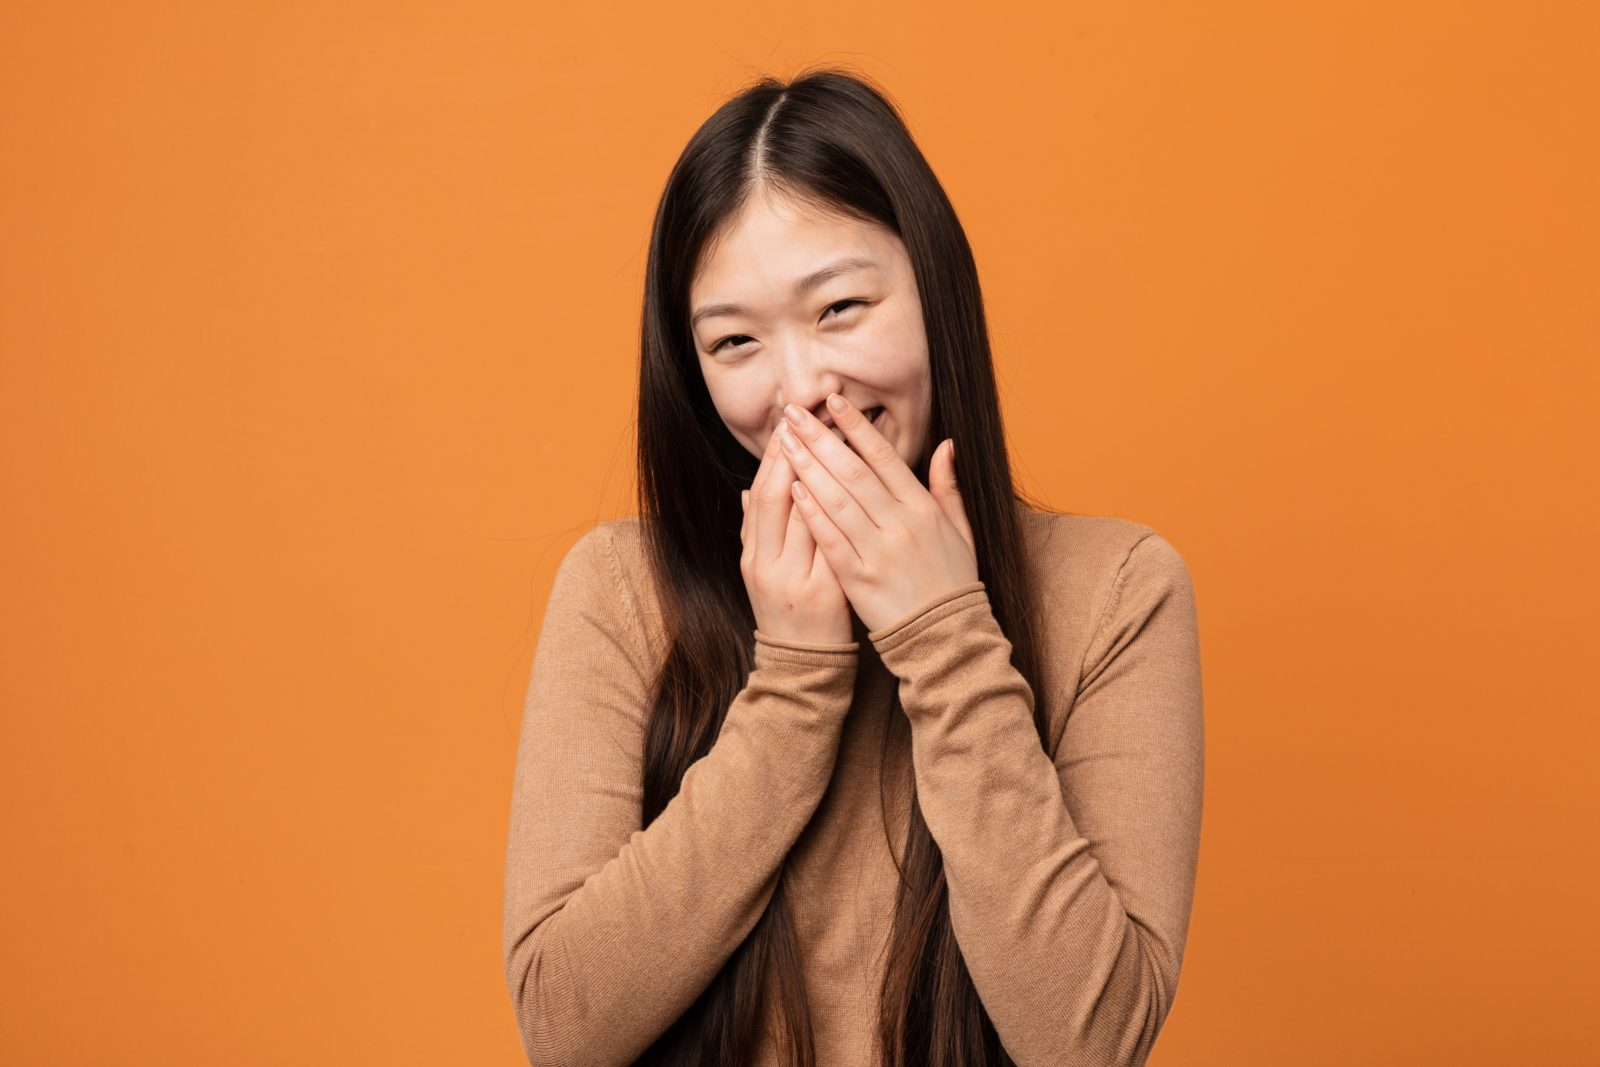 Chinese lady laughing at something funny